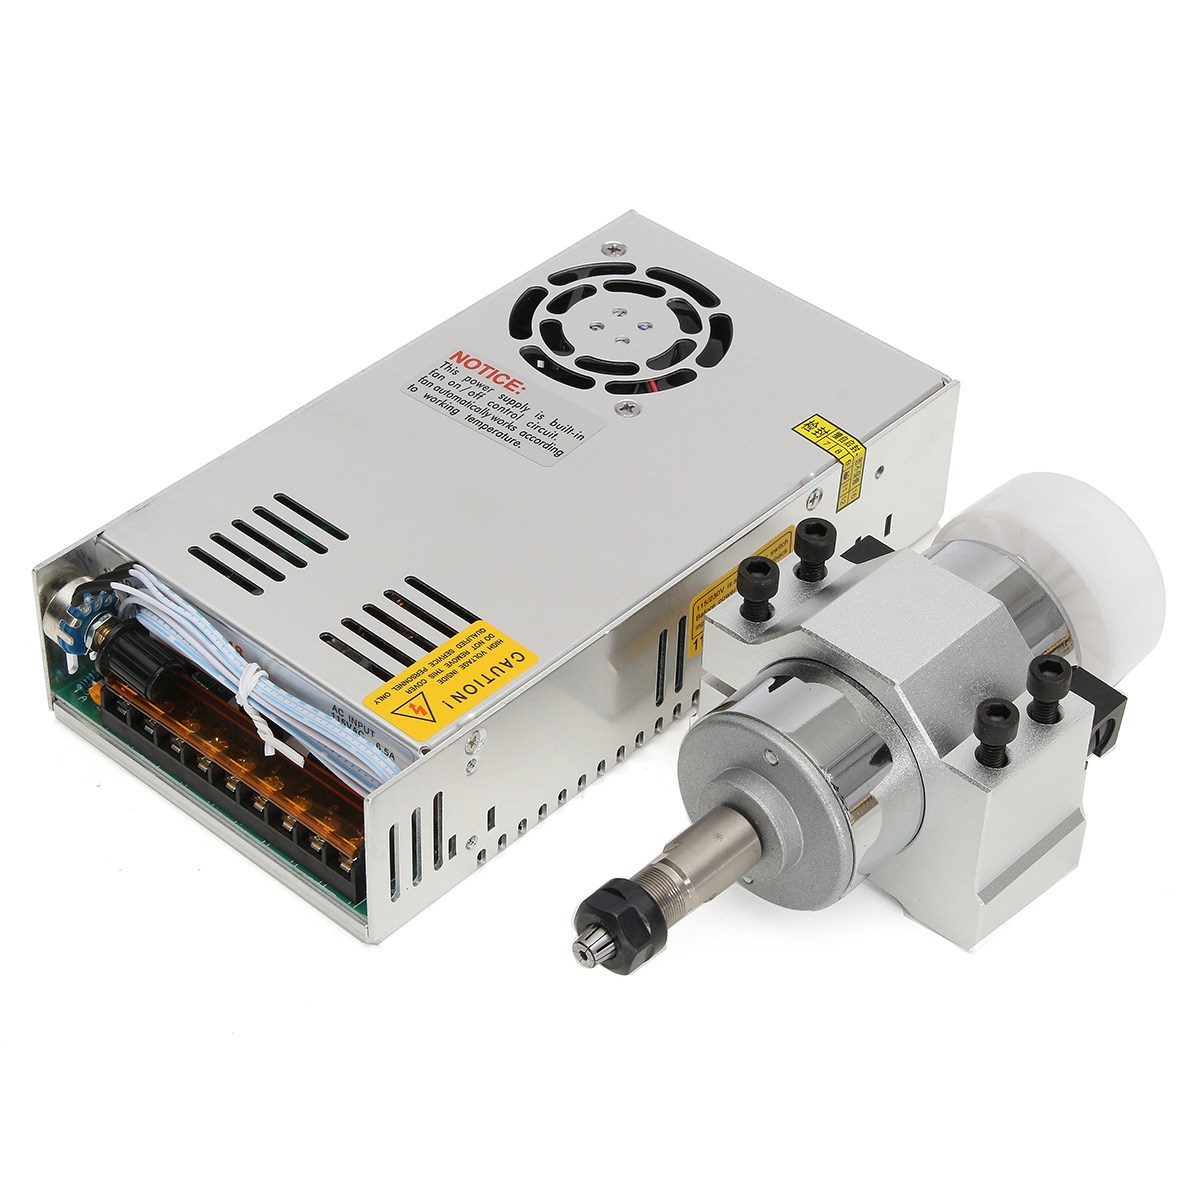 300W Engraving Machine Air Cooled Spindle ER11 Chuck CNC 0.5KW Spindle Motor 52mm clamps Power Supply Speed Governor For DIY CNC матрас орматек flex zone plus big 180x200